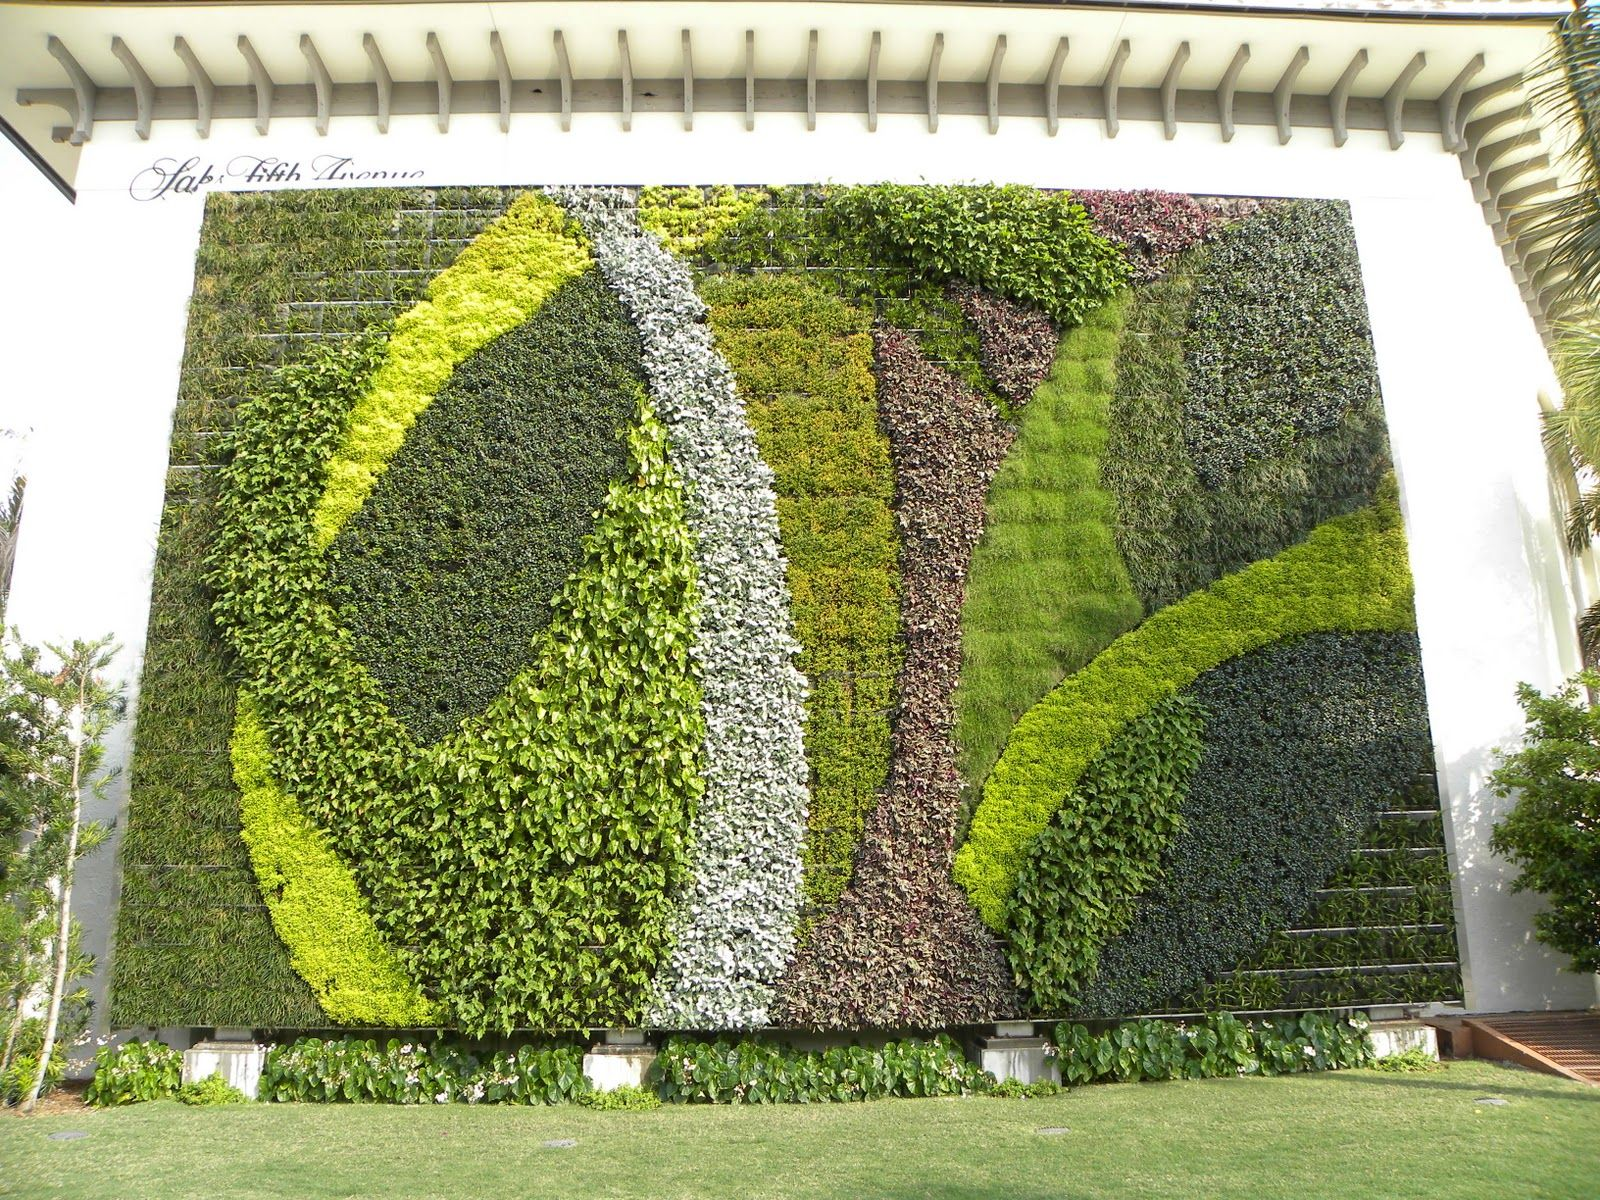 Living Wall At Saks Fifth Avenue On Worth Avenue In Palm Beach Photo By Anne Reeves Green